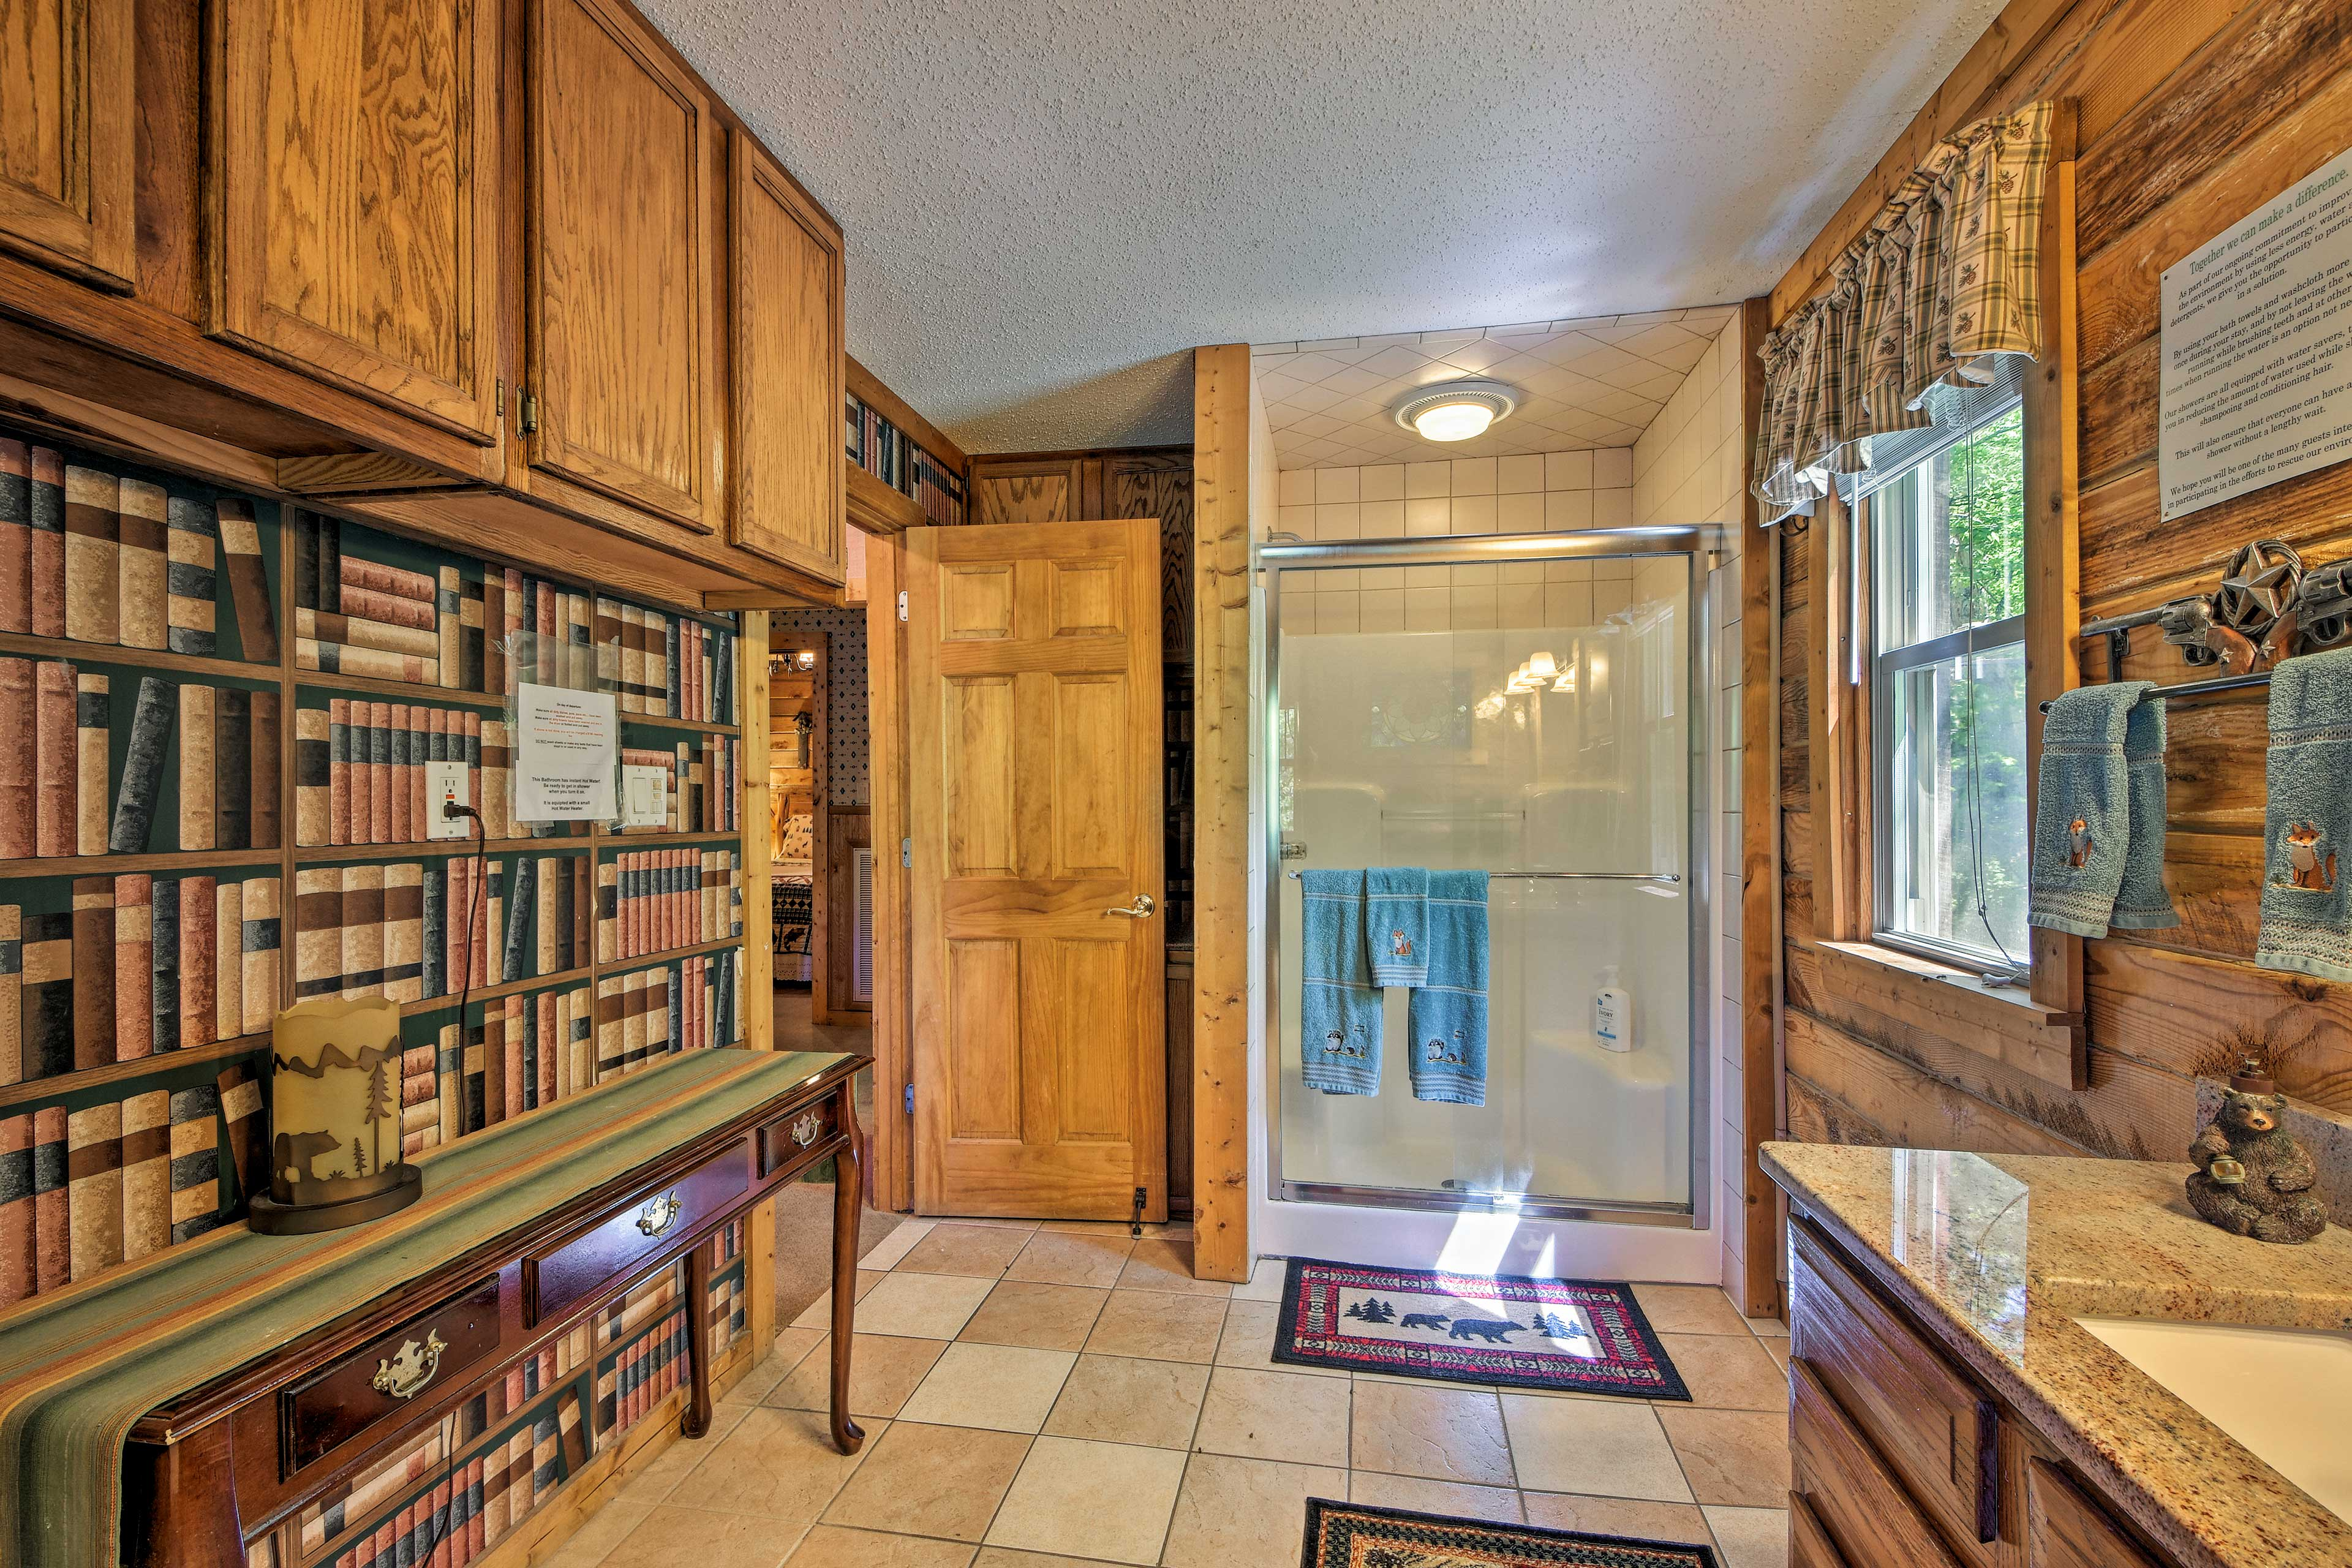 With 3 full bathrooms, this cabin ensures that no bathroom fights occur!